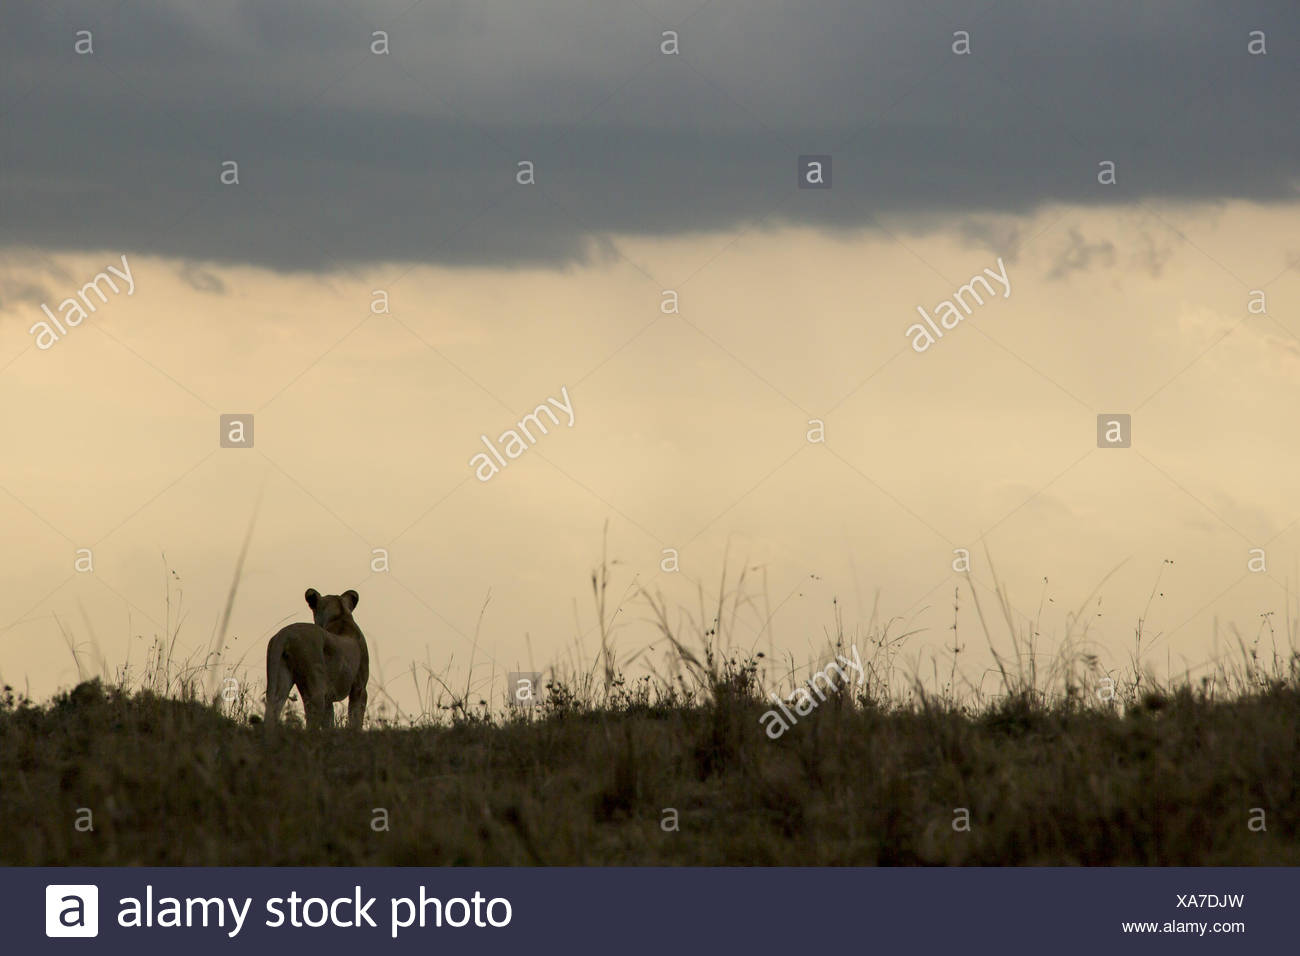 A lioness, Panthera leo, stands on top of a hill at sunset and surveys her surroundings. - Stock Image